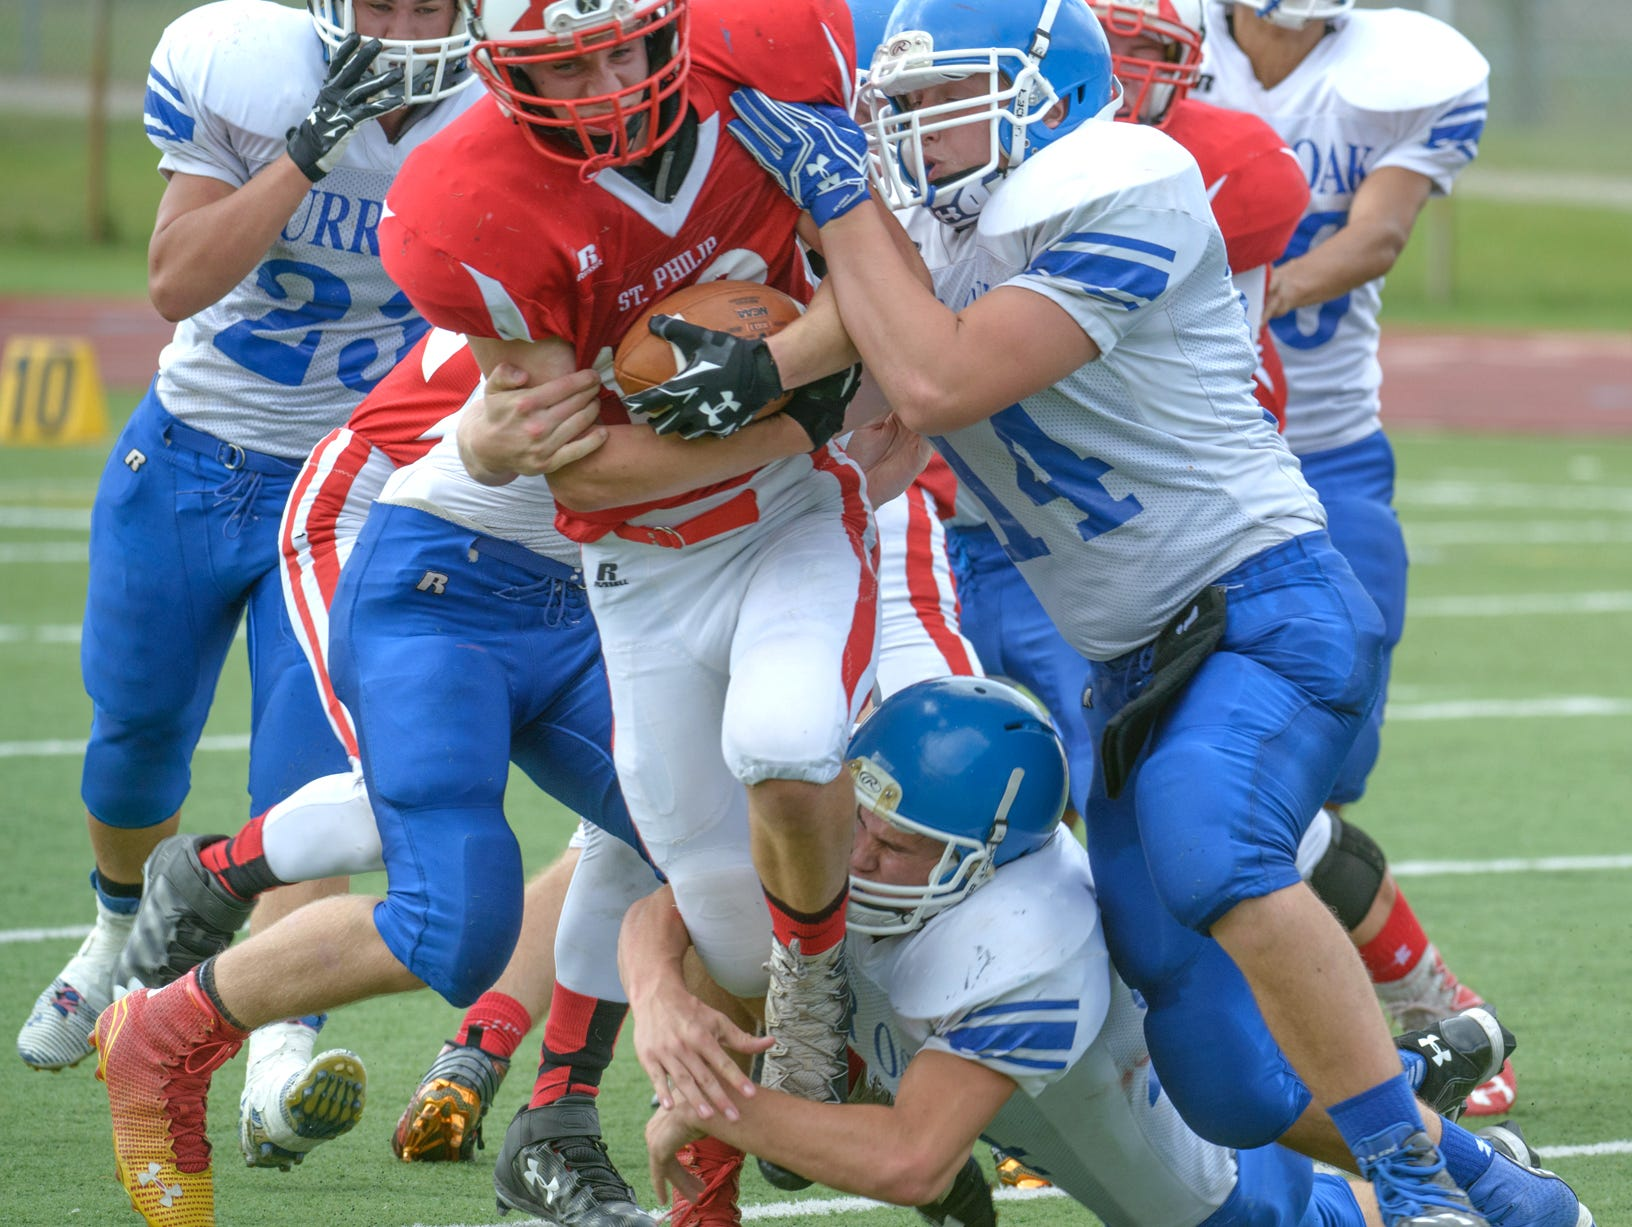 St. Philip tight end Grayson Obey (16) powers through Burr Oak defenders for positive yards Saturday afternoon.